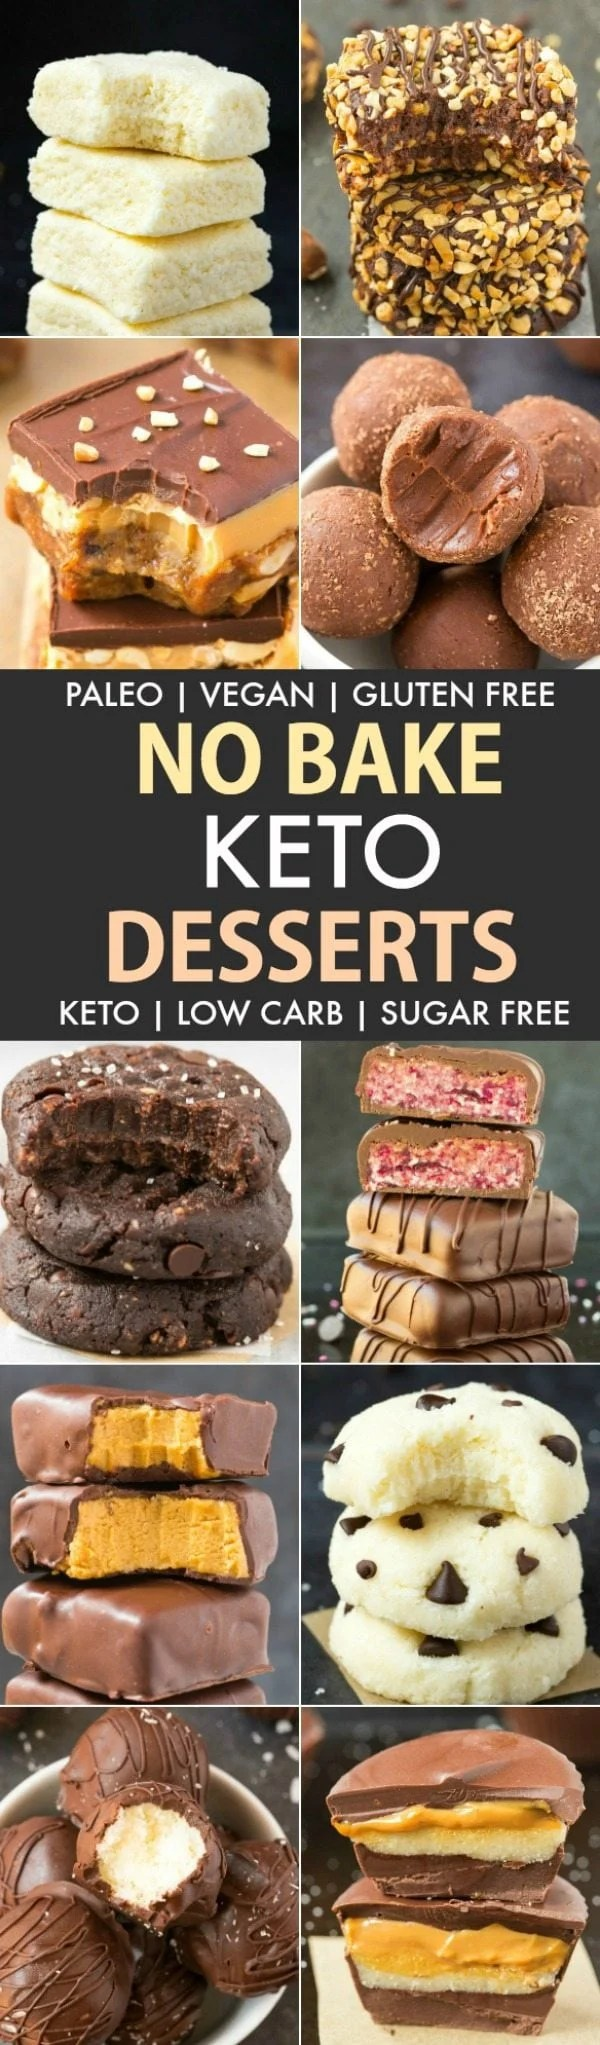 Easy Low Carb Keto No Bake Desserts